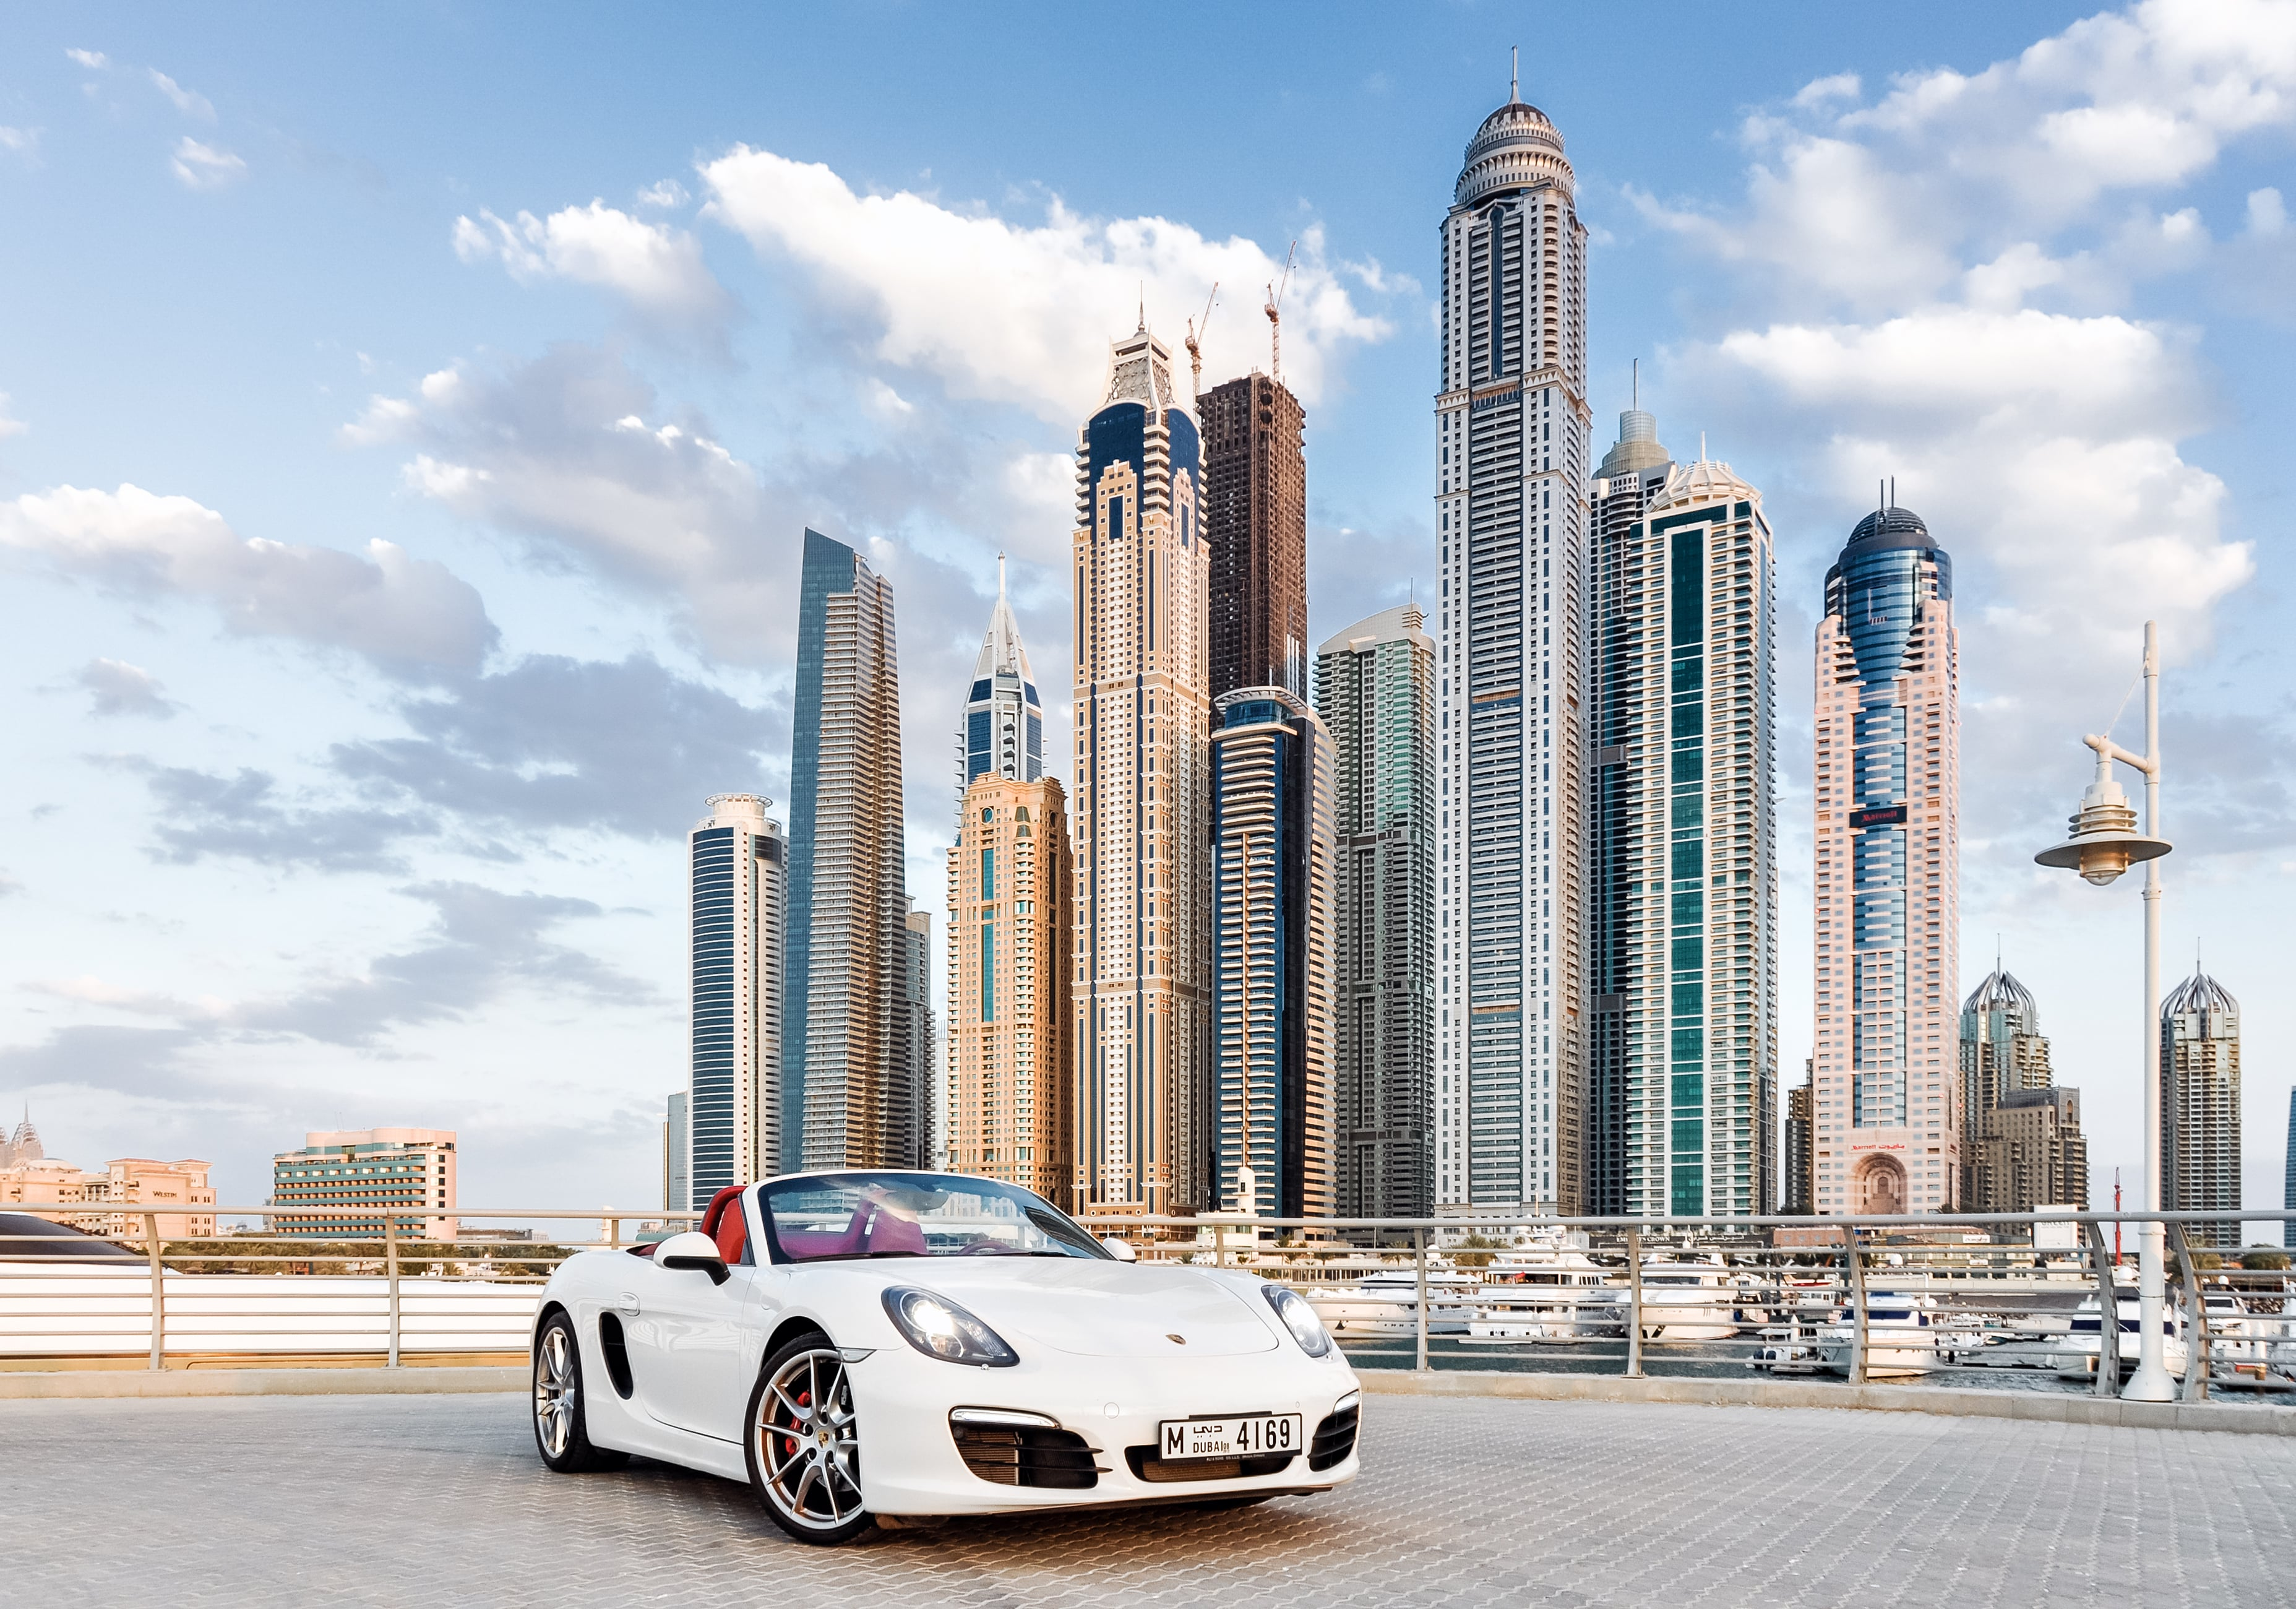 Advantages of Renting a Luxury Car,eZhire offers affordable luxury cars  rental anywhere in UAE.